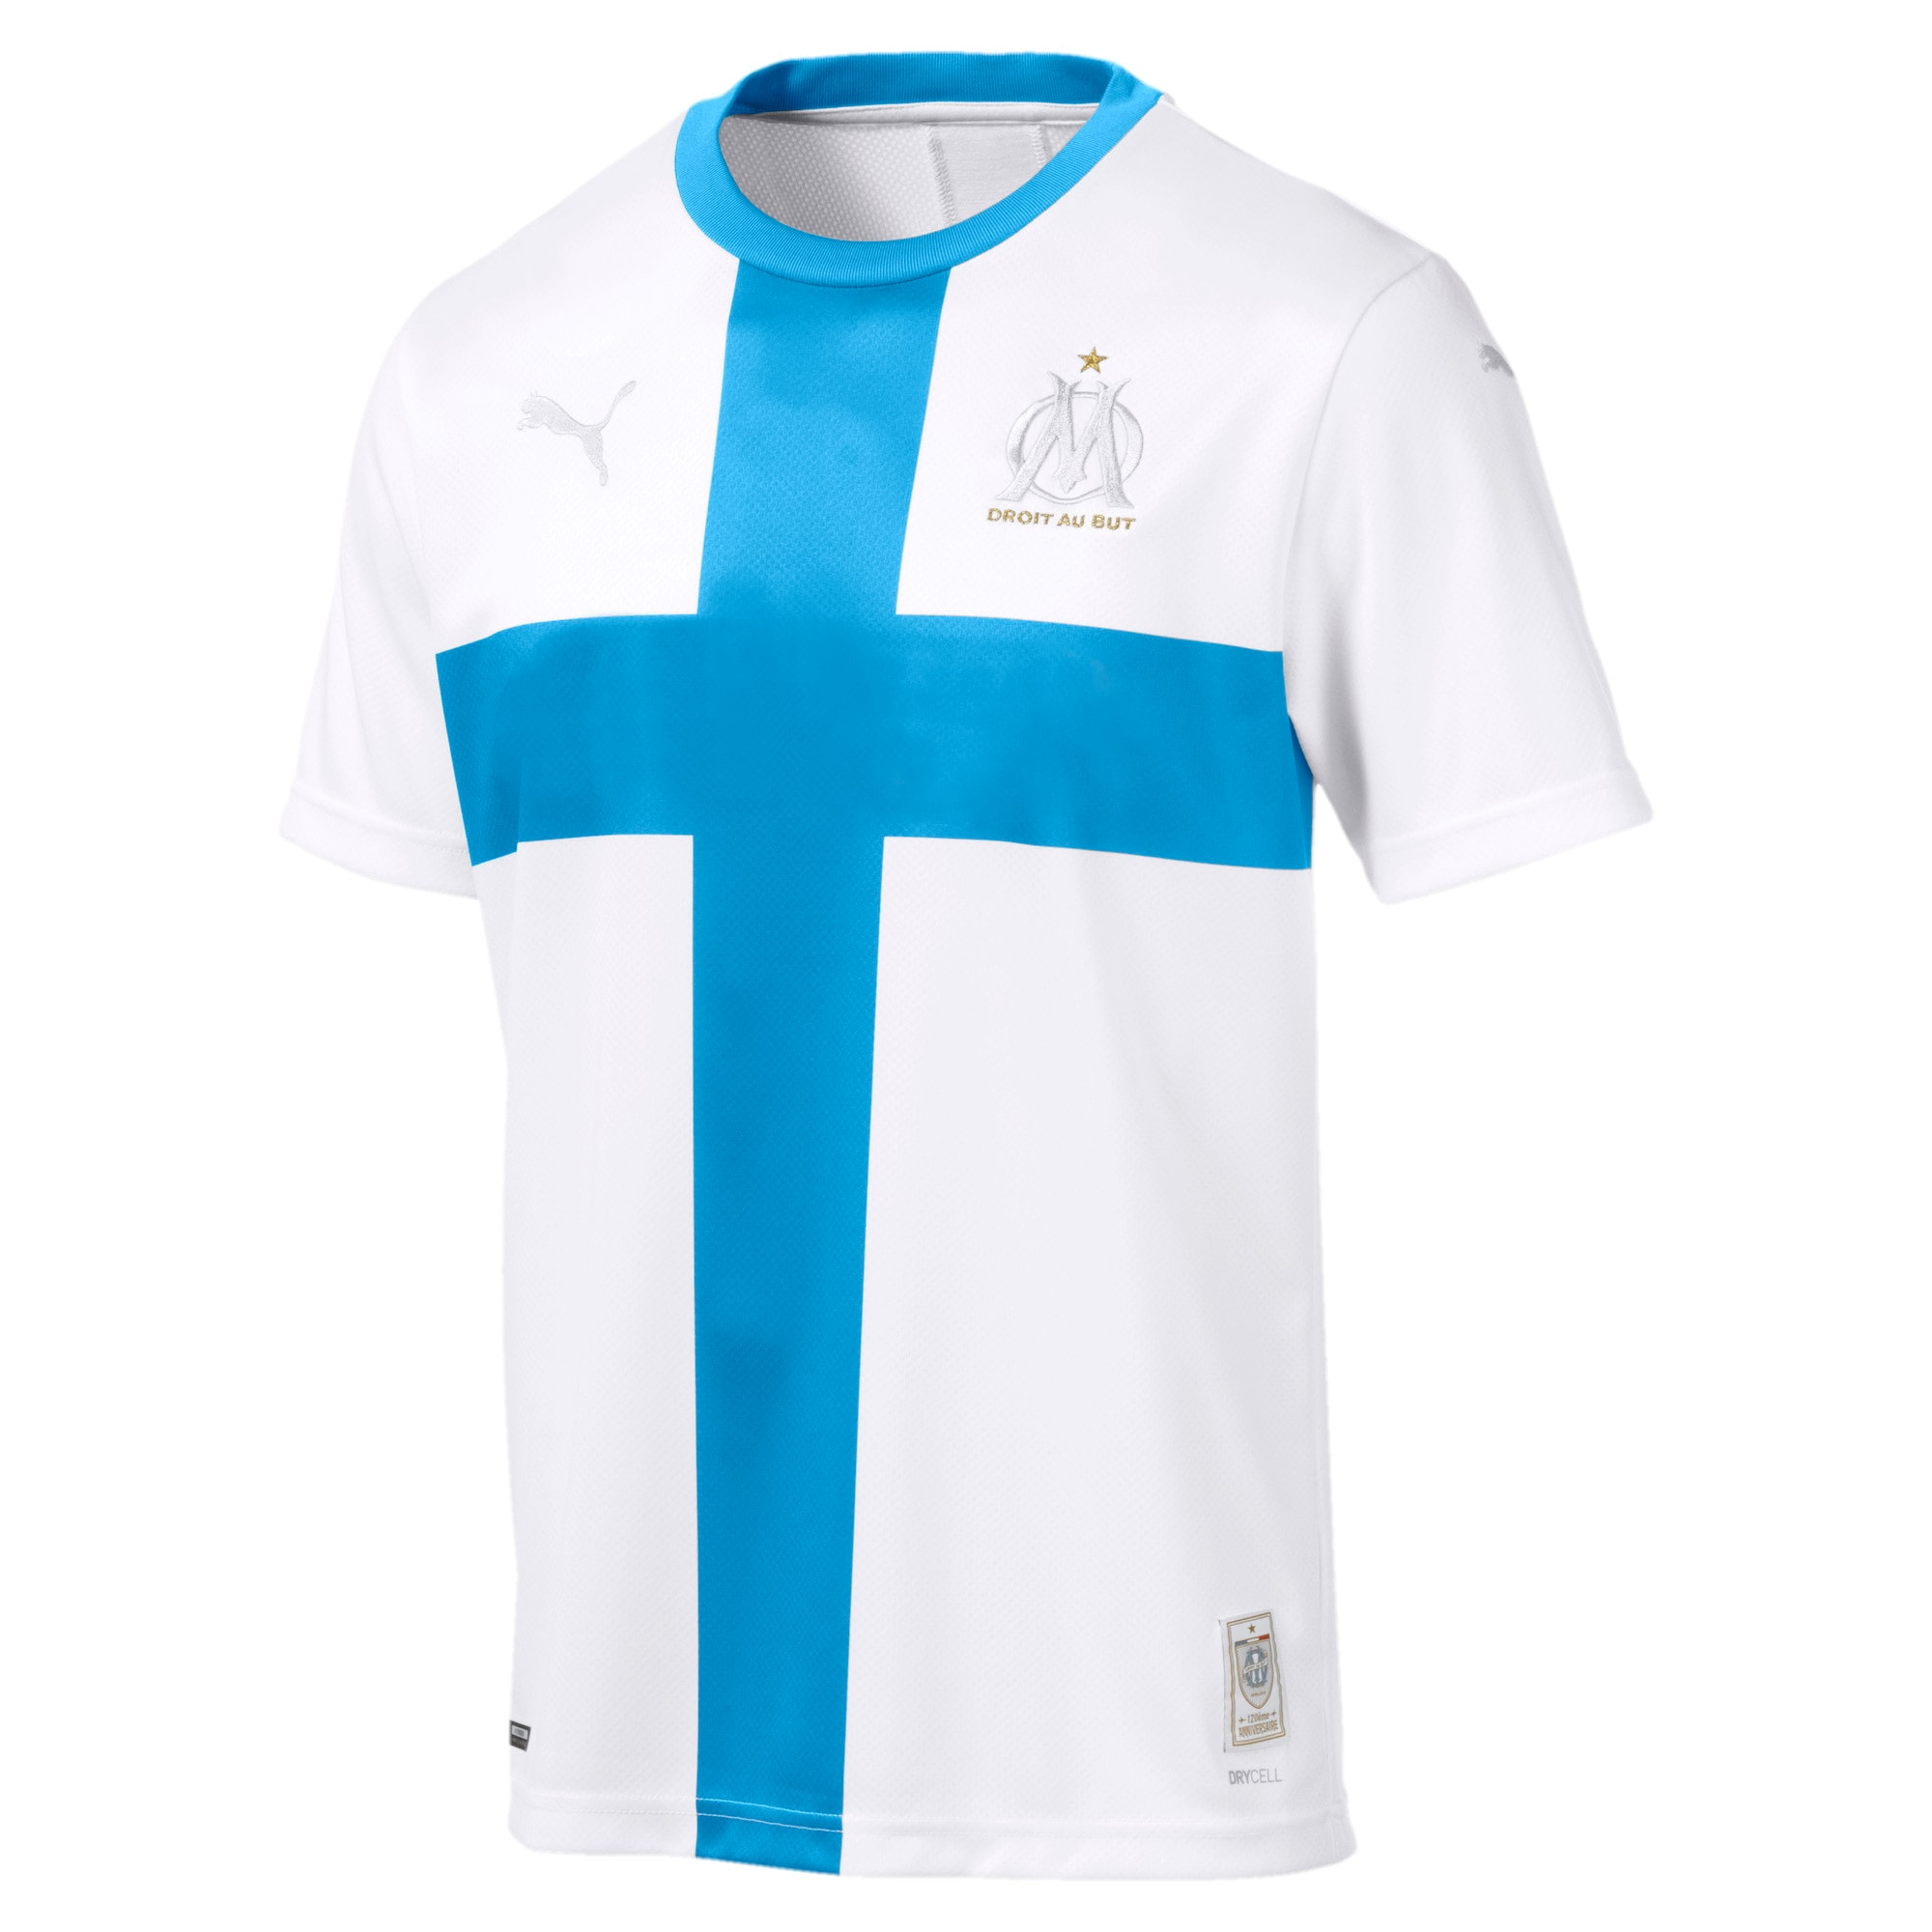 Thumbnail 1 of Olympique de Marseille120th Anniversary Herren Replica Kurzarm Trikot, Puma White-Bleu Azur, medium